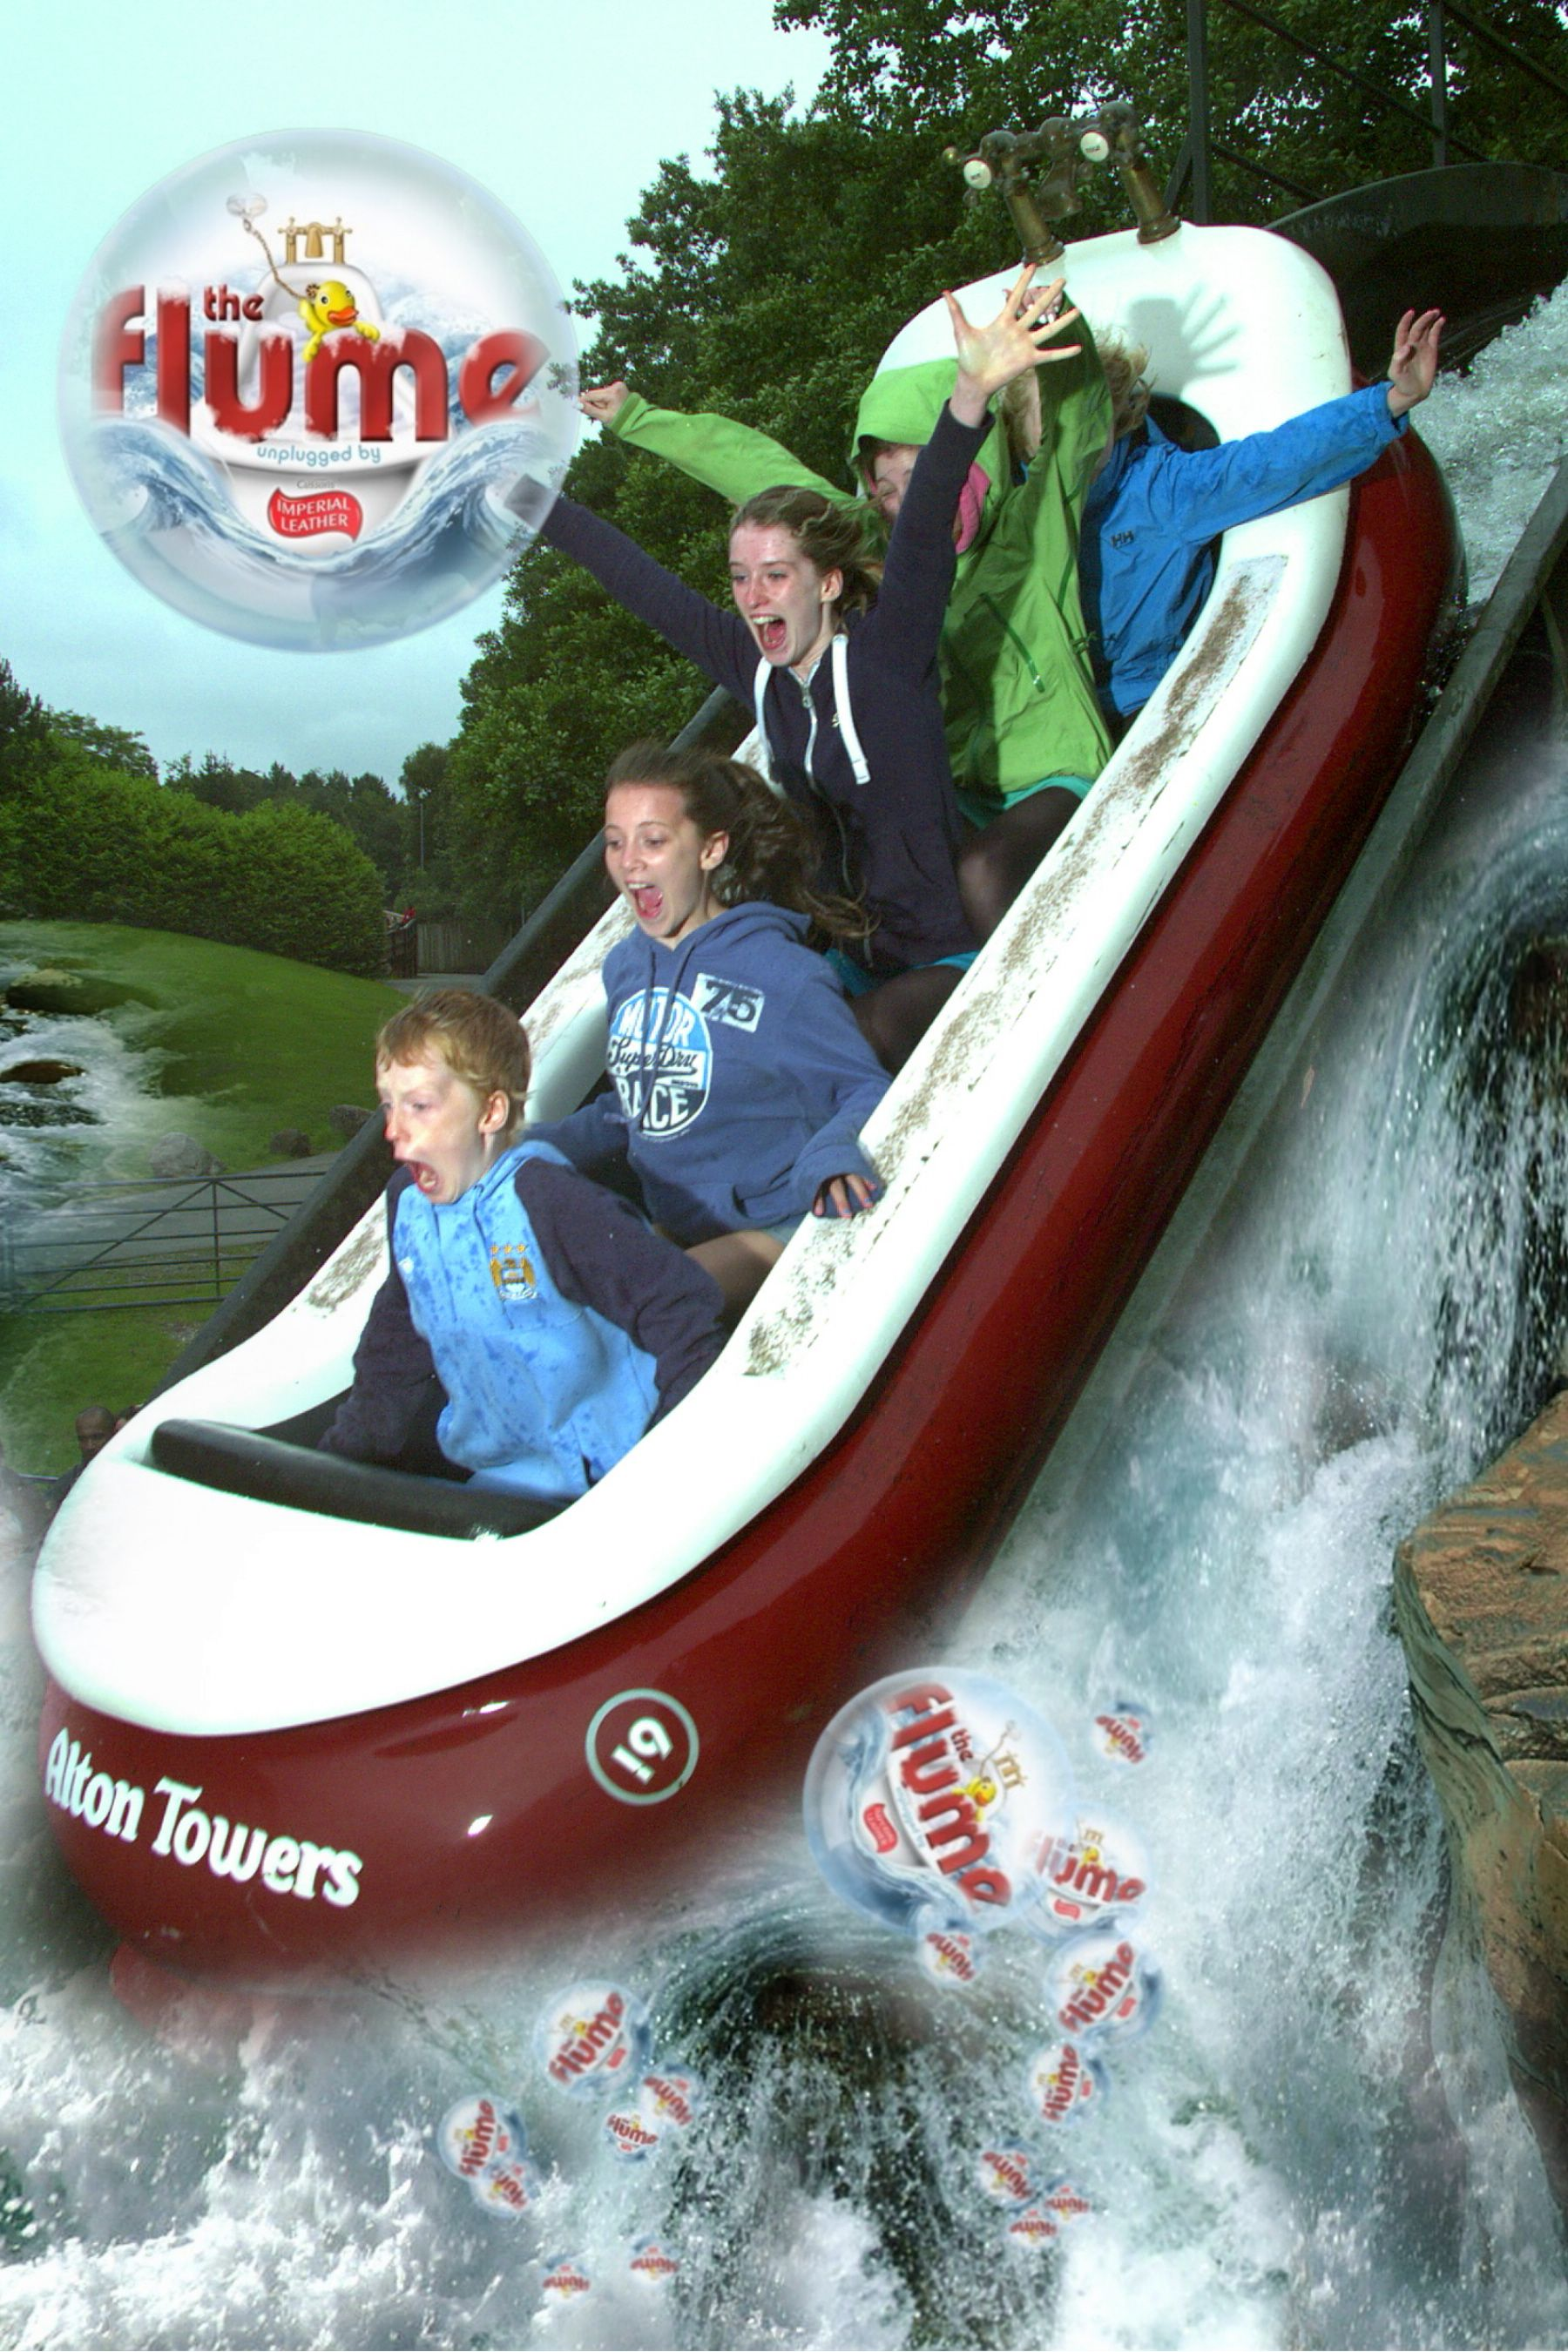 I love Alton Towers and have been on nearly all the rides